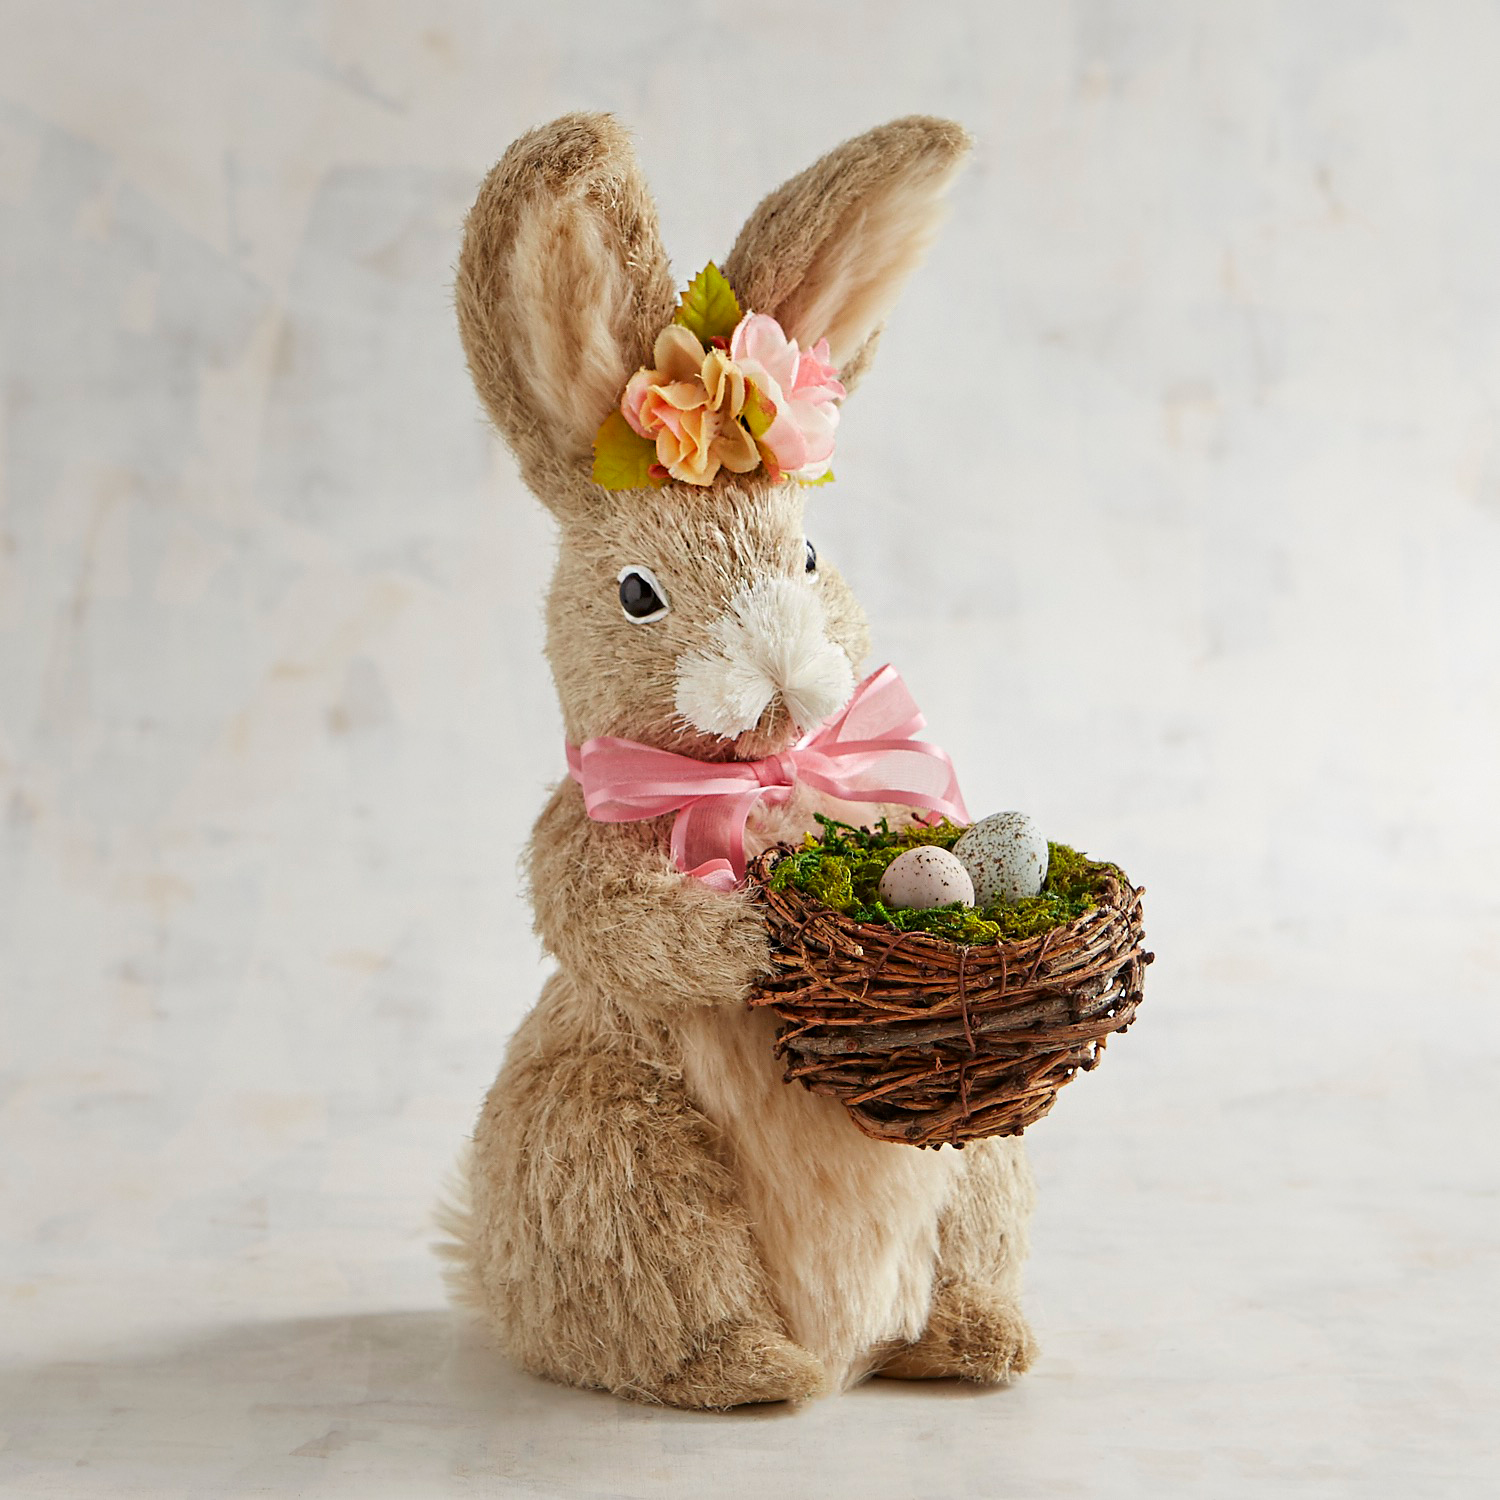 Fiona the Natural Bunny with Flower Garland & Basket of Eggs